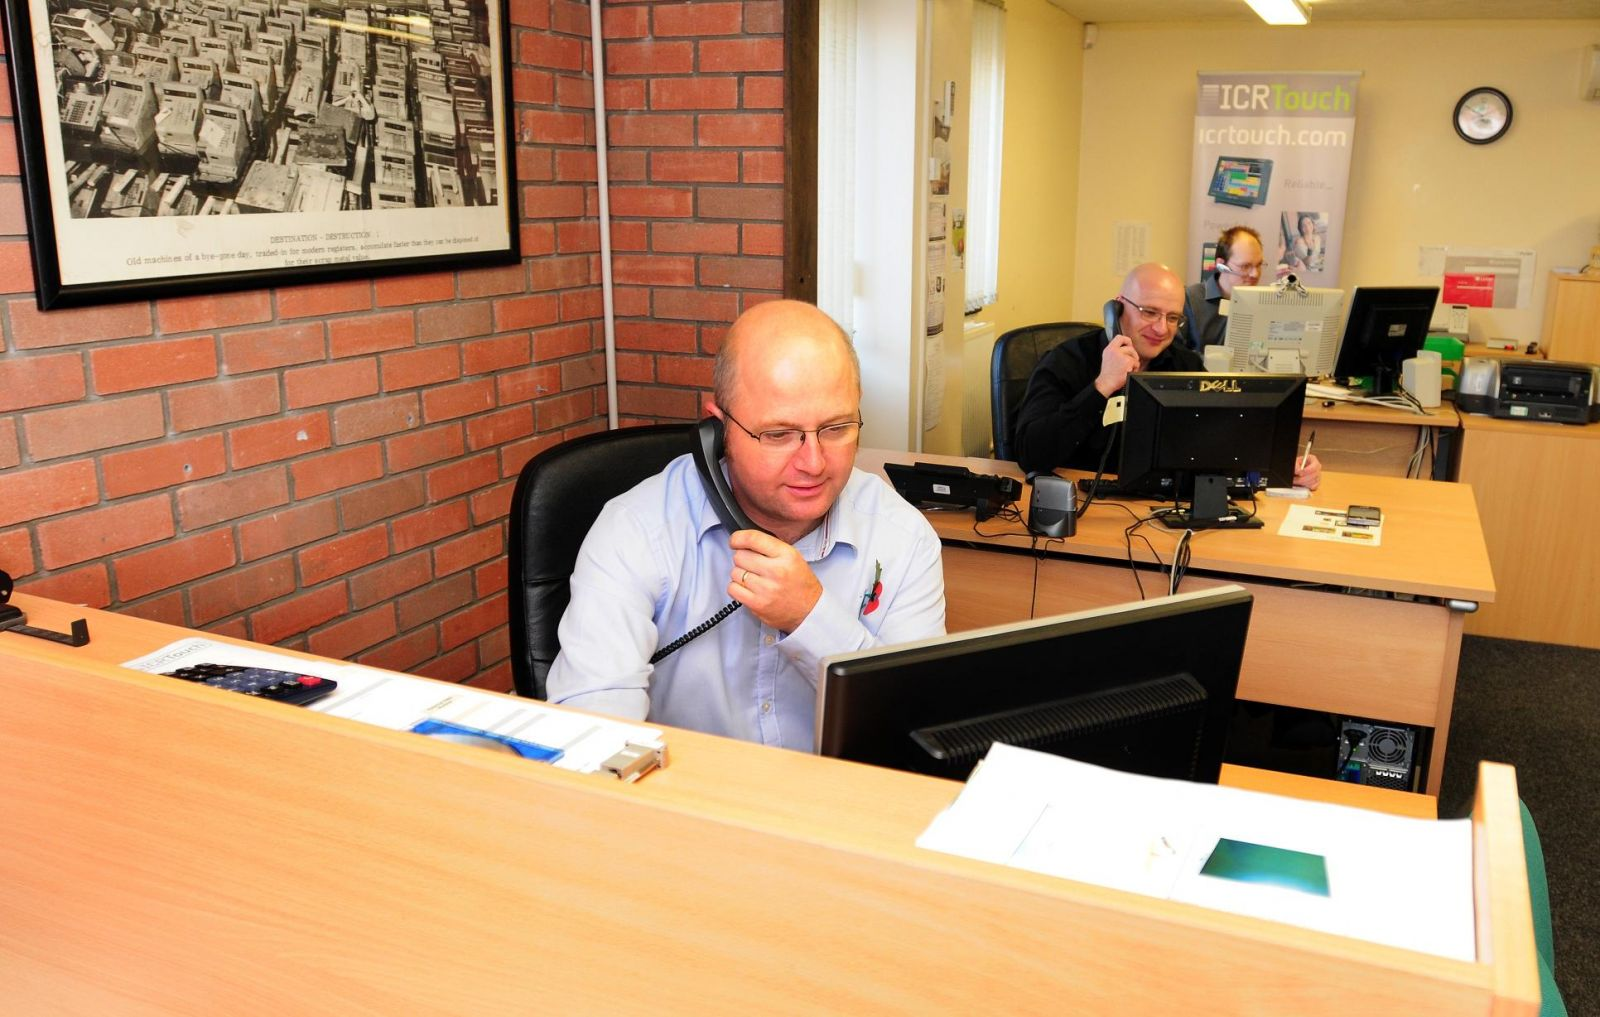 Some of our EPoS technical support team